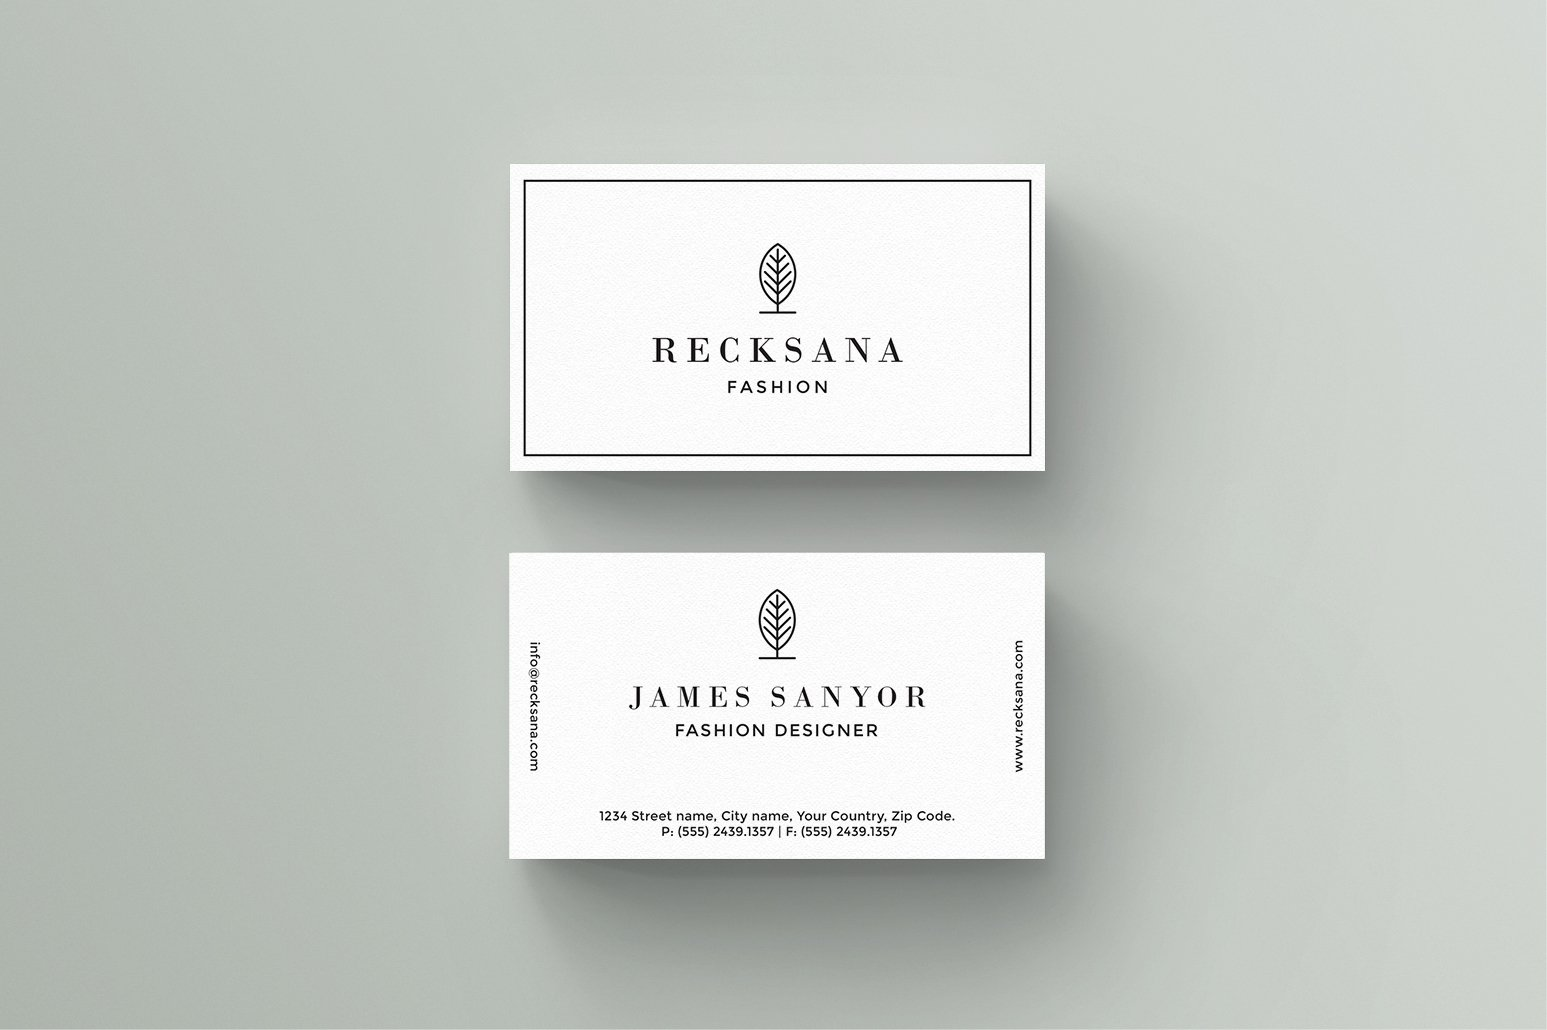 Adventure business card photos graphics fonts themes templates recksana business card template fbccfo Images